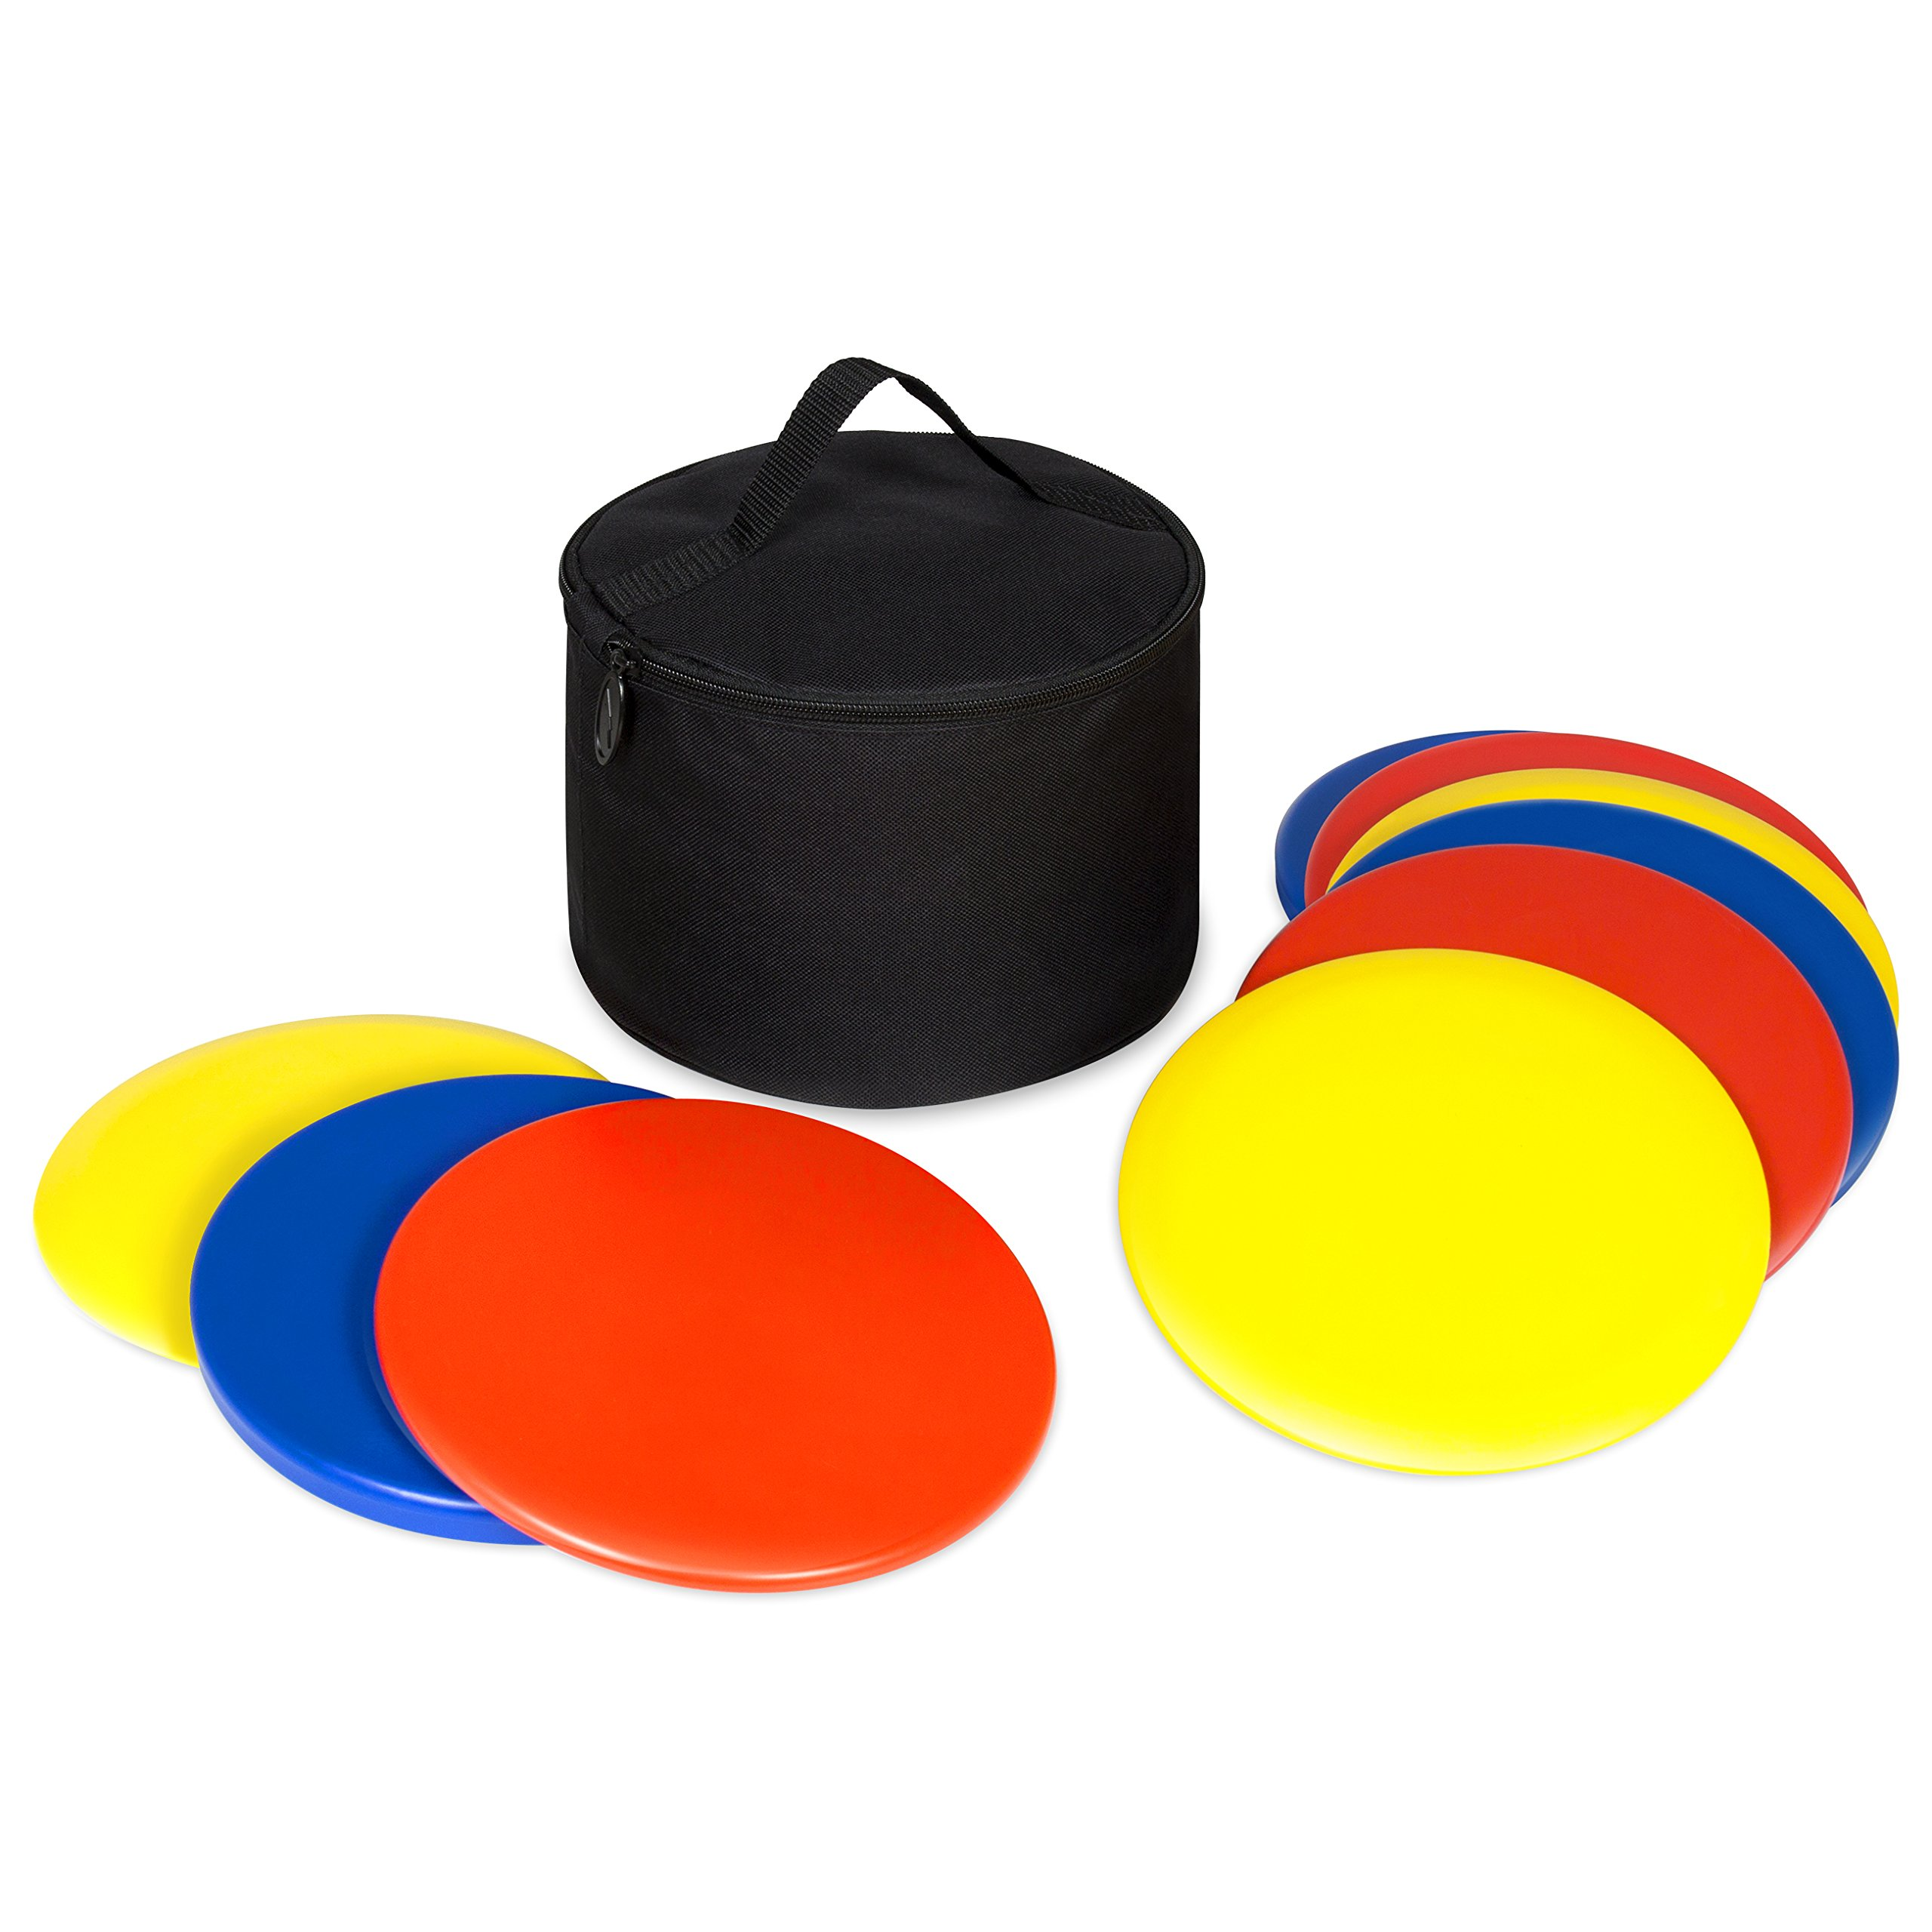 Best Choice Products 9-Piece Portable Lawn Games Disc Golf Set w/Carrying Bag - Multicolor by Best Choice Products